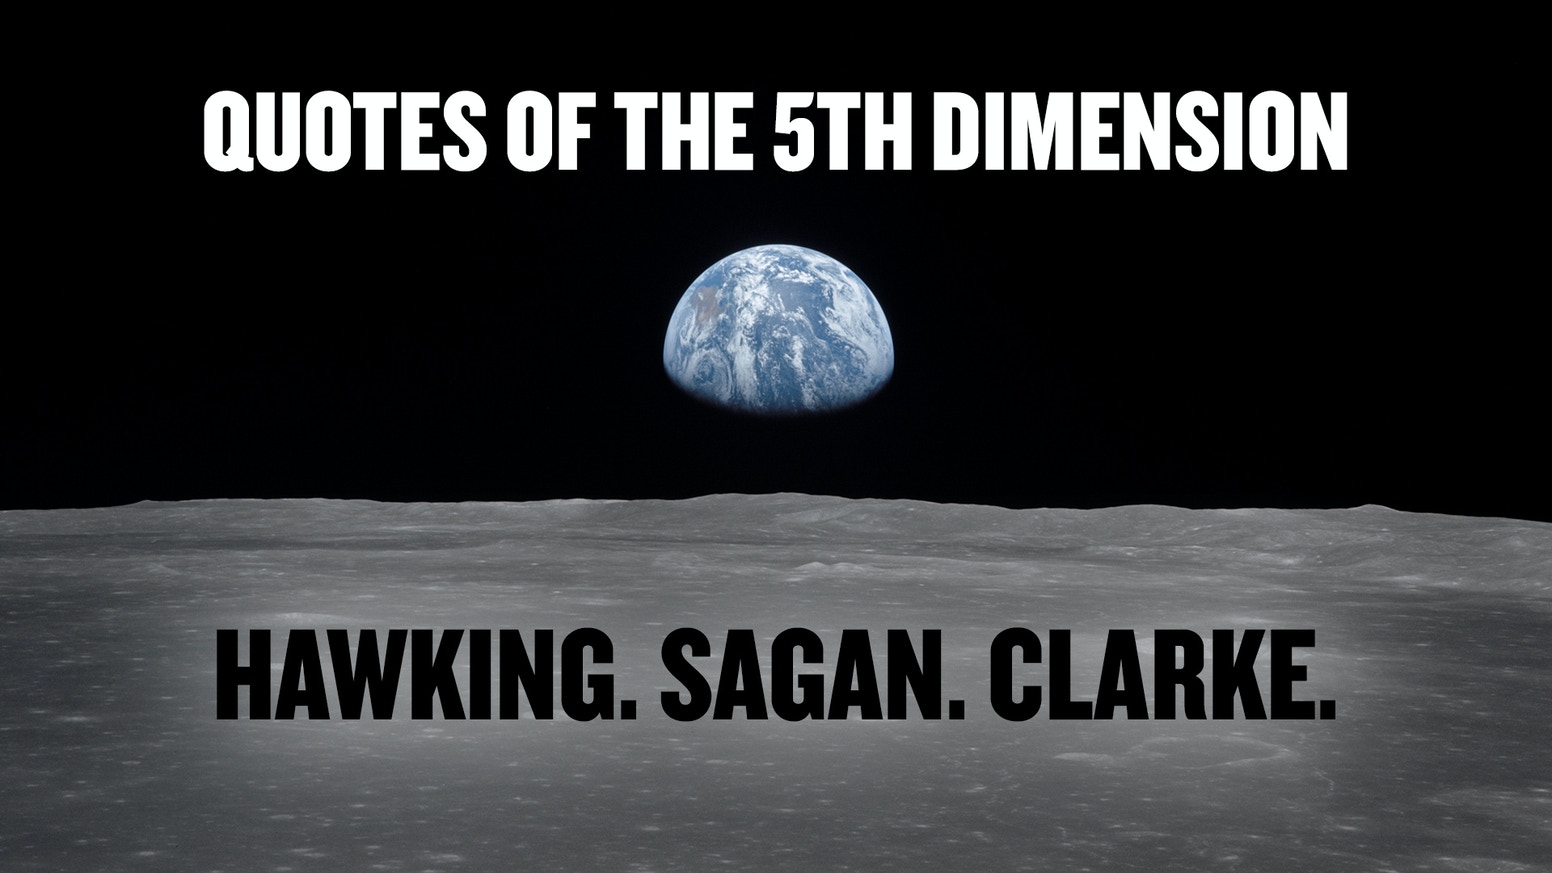 Quotes Of The 5th Dimension Hawkingsaganclarke By Anne Stilper